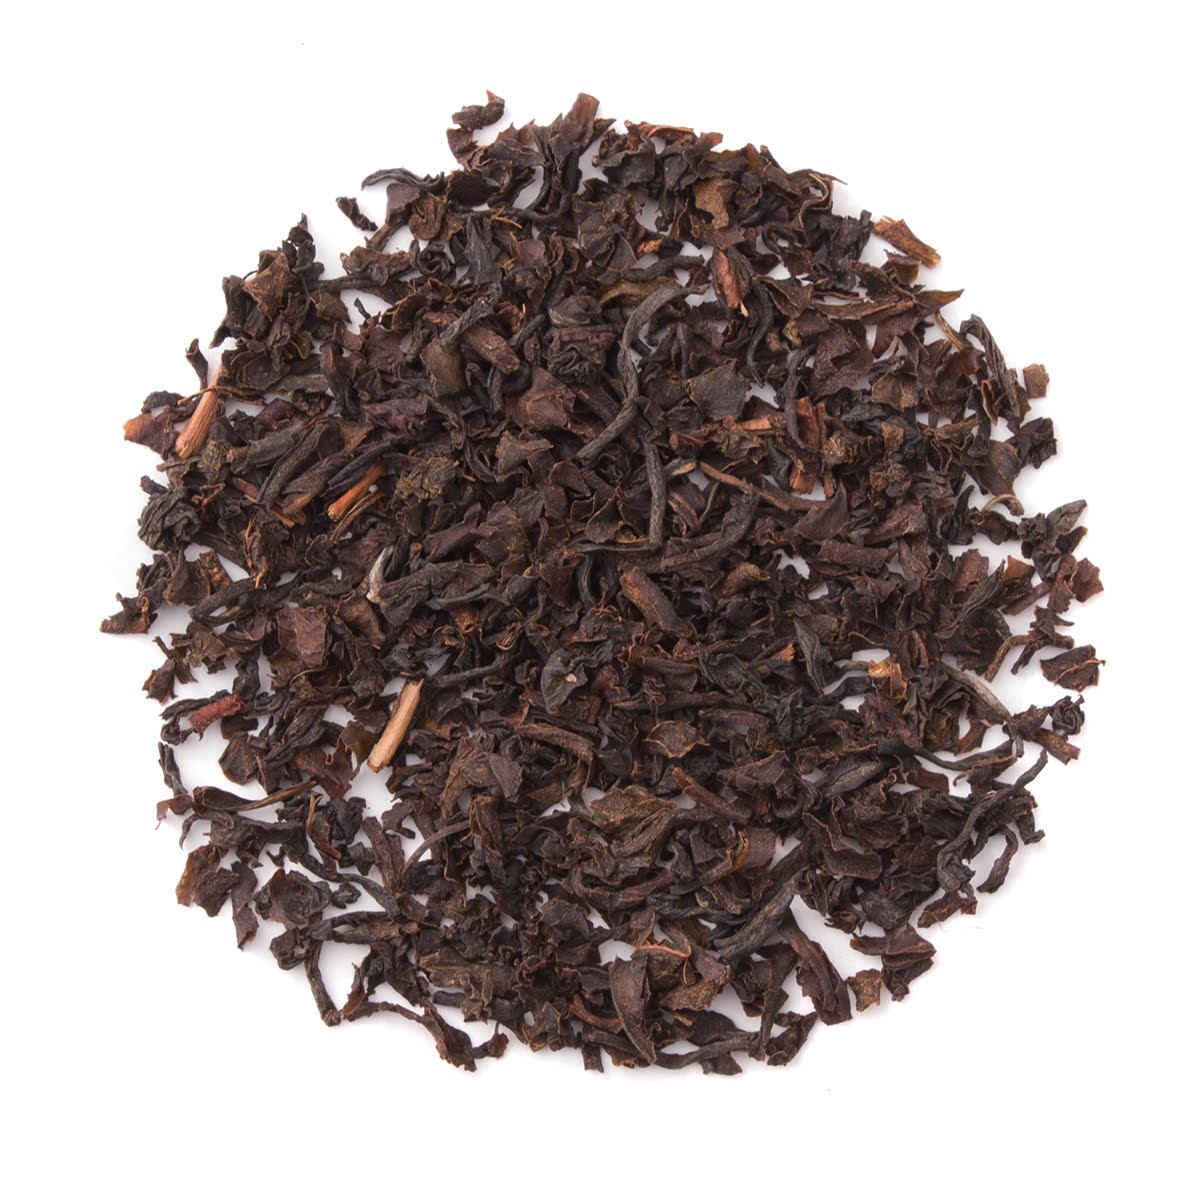 Brisk Teas - Black Teas - Bright Teas - Heavenly Tea Leaves